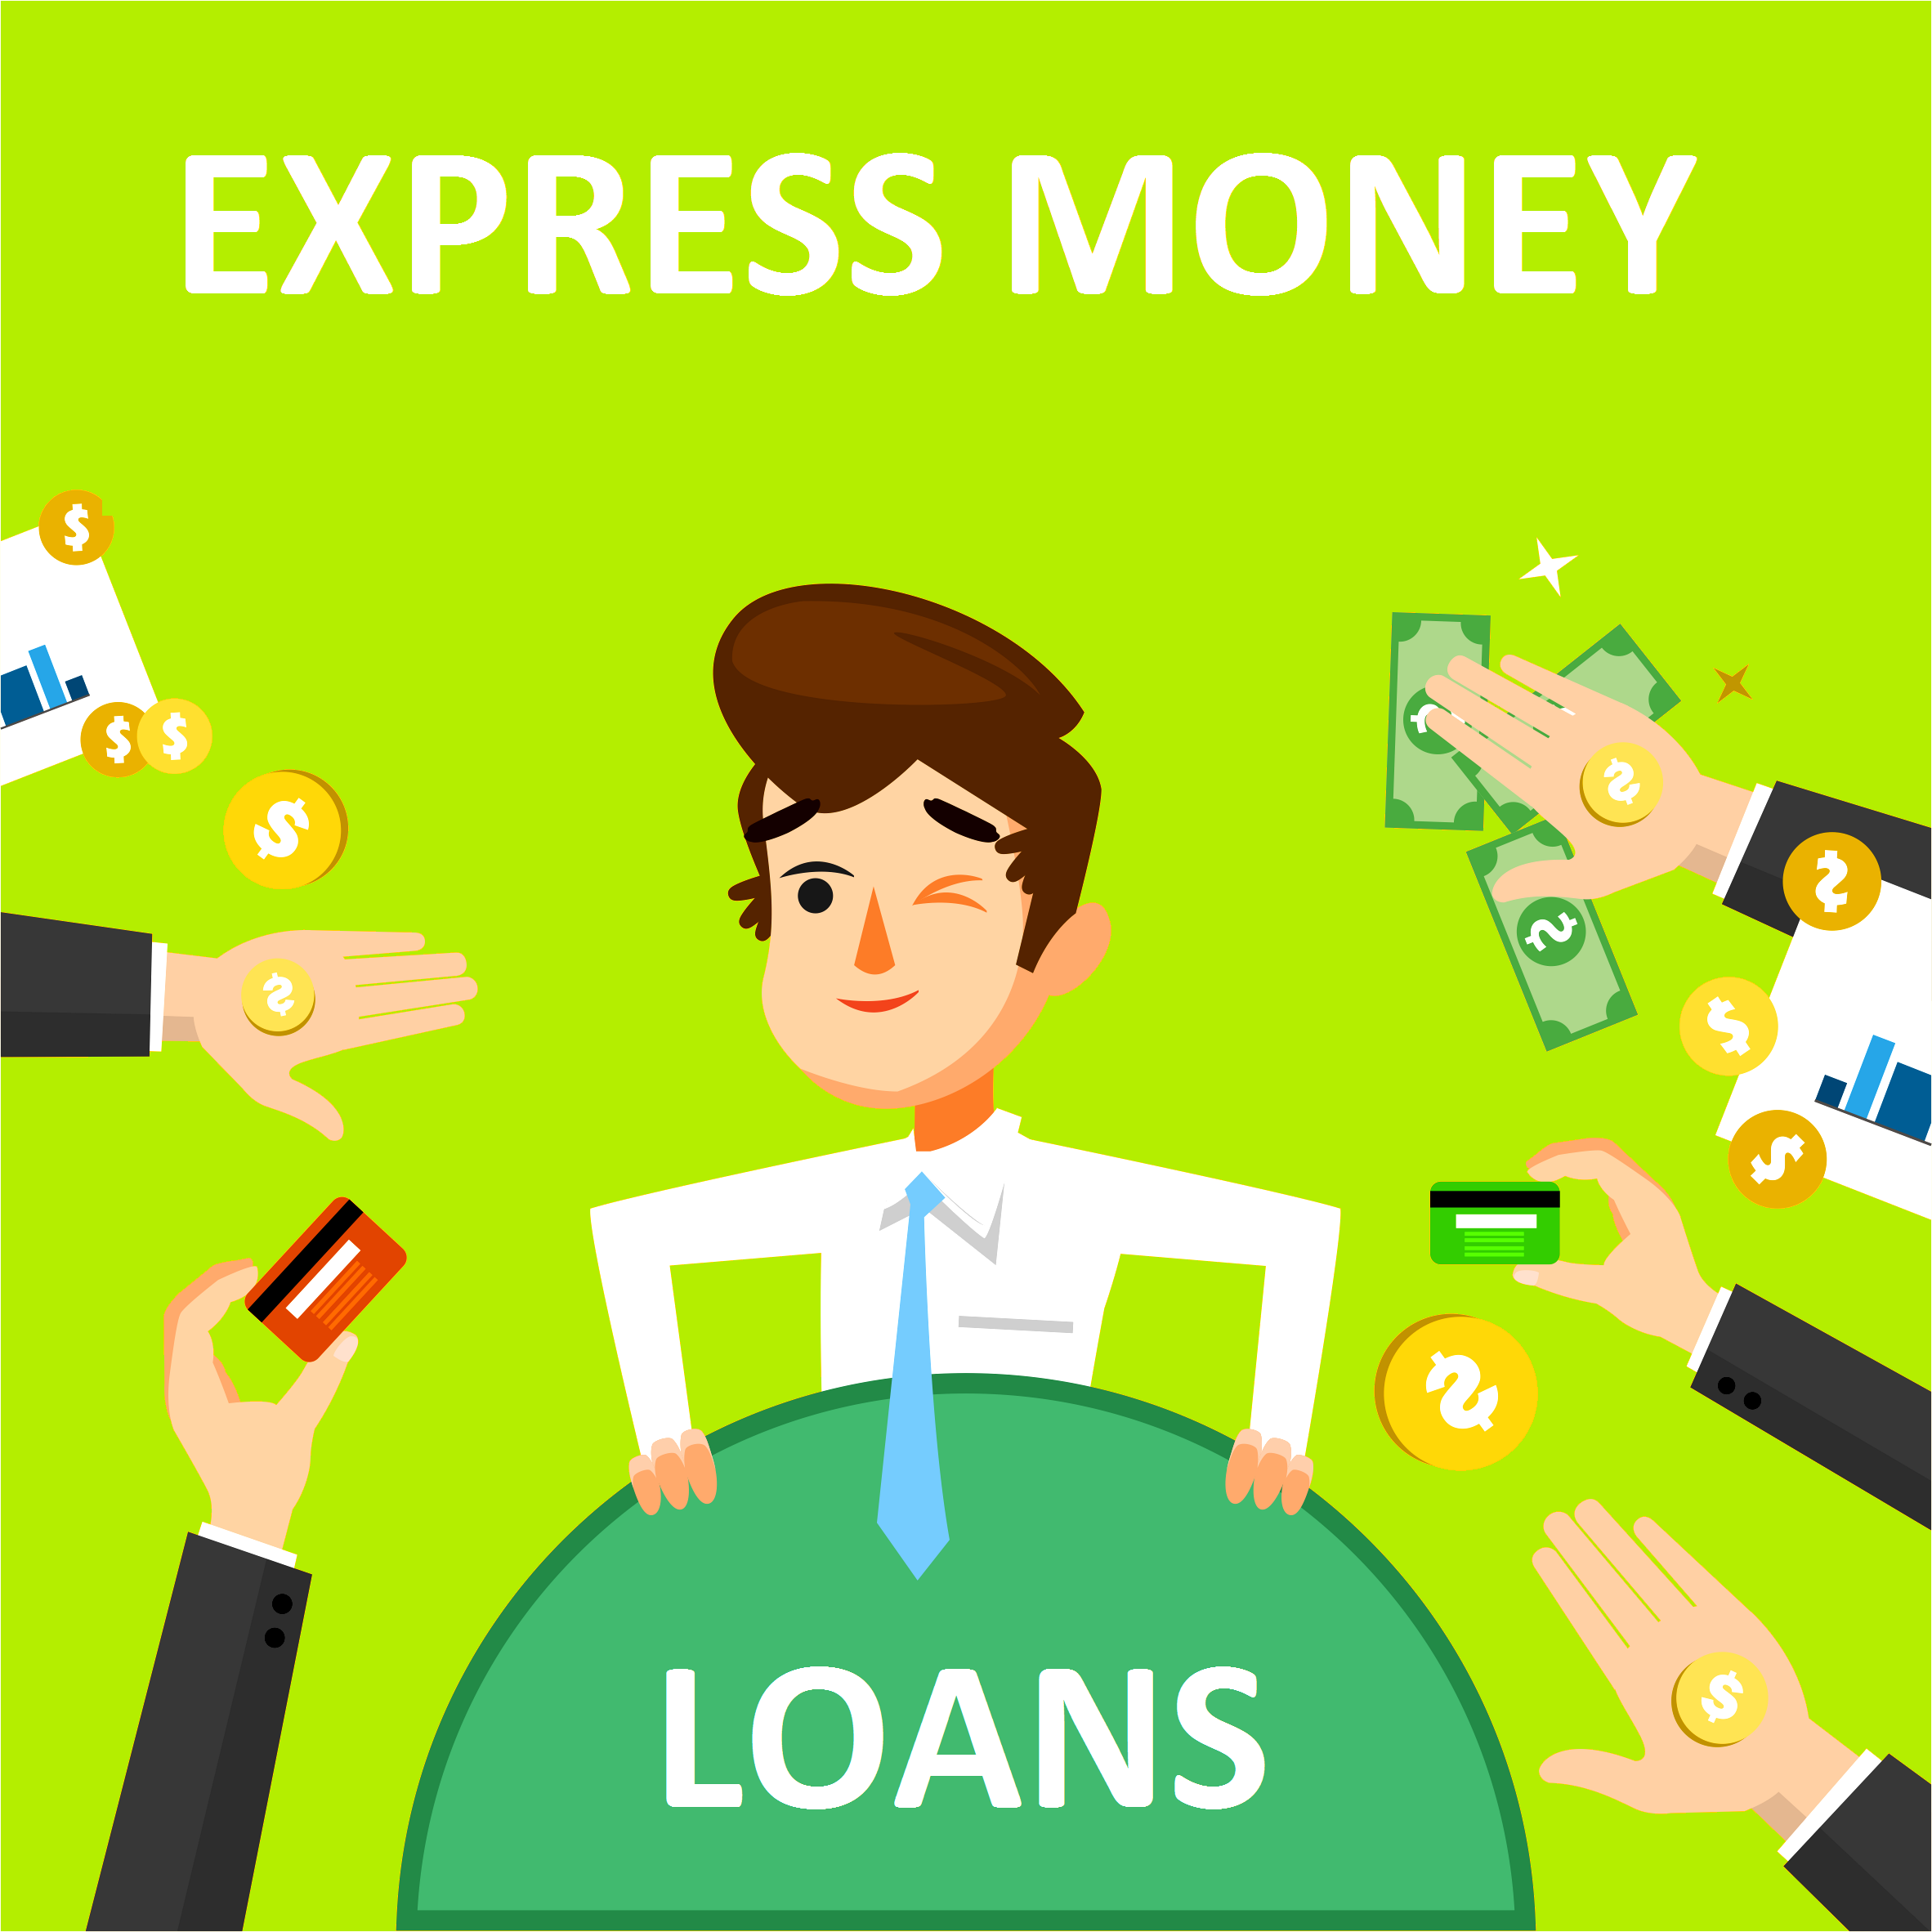 Express Money Loans